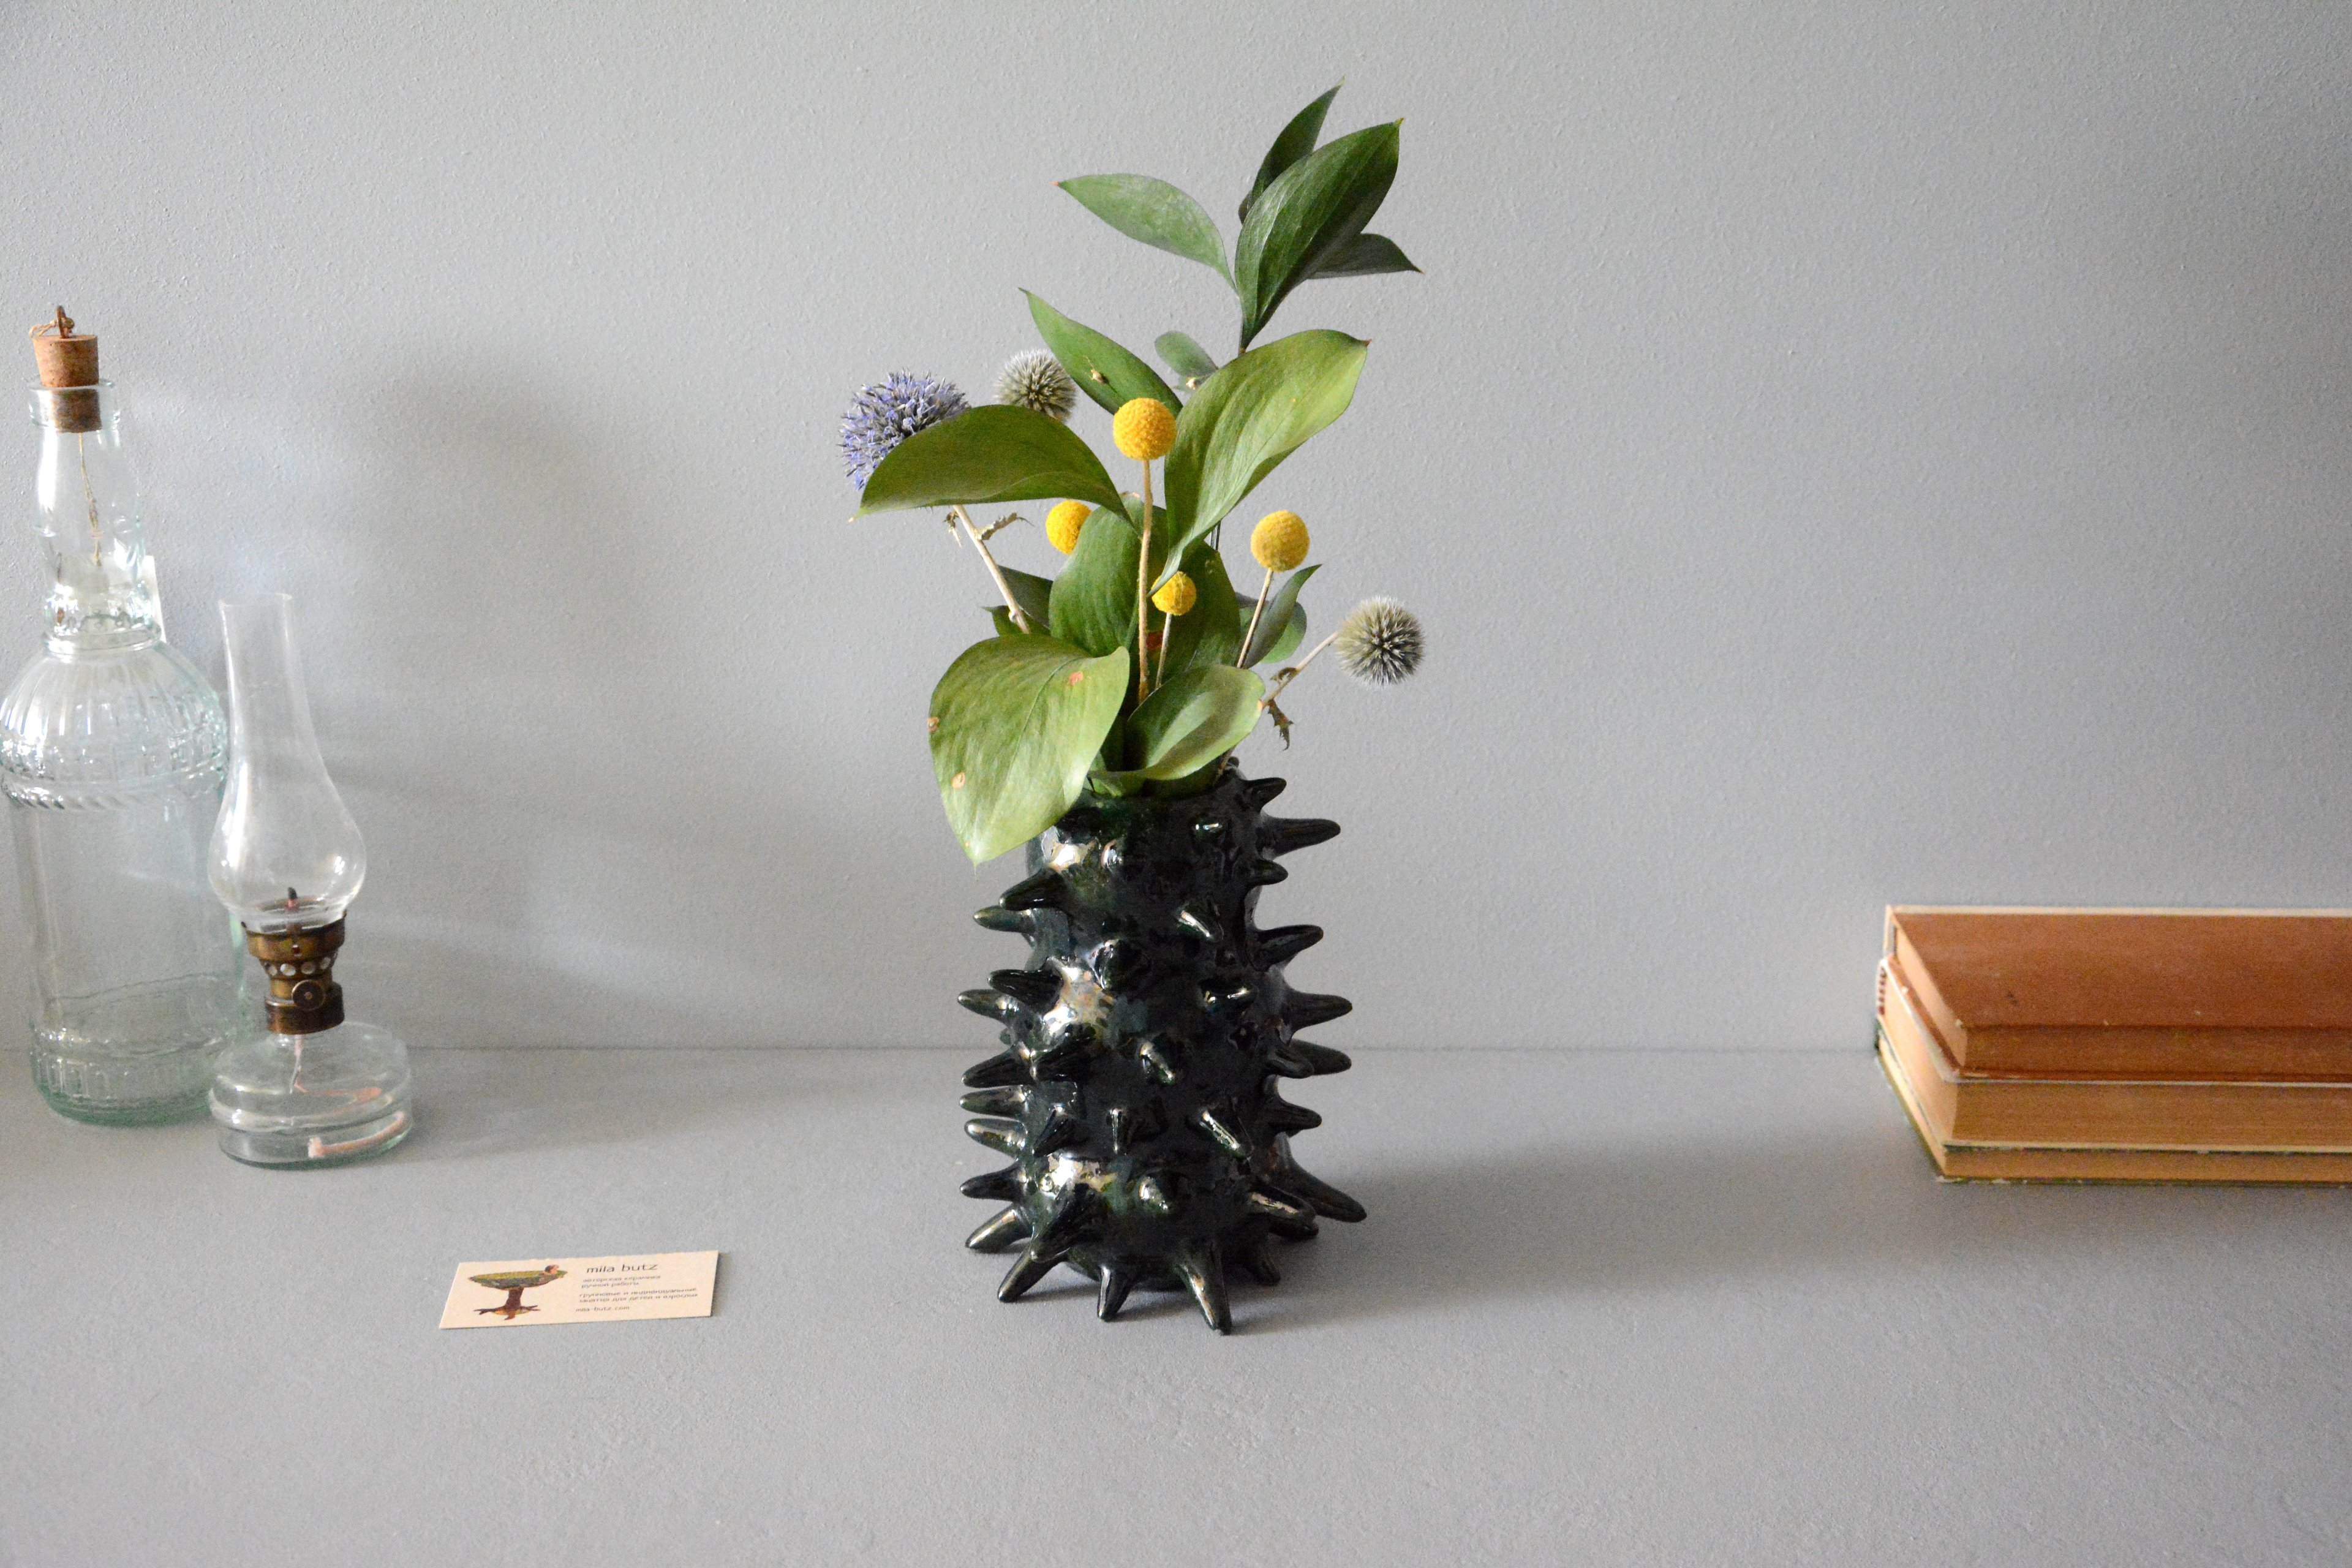 Interior vase «Pearl deep green Spikes», height - 18 cm, color -  pearl-green. Photo 1237.